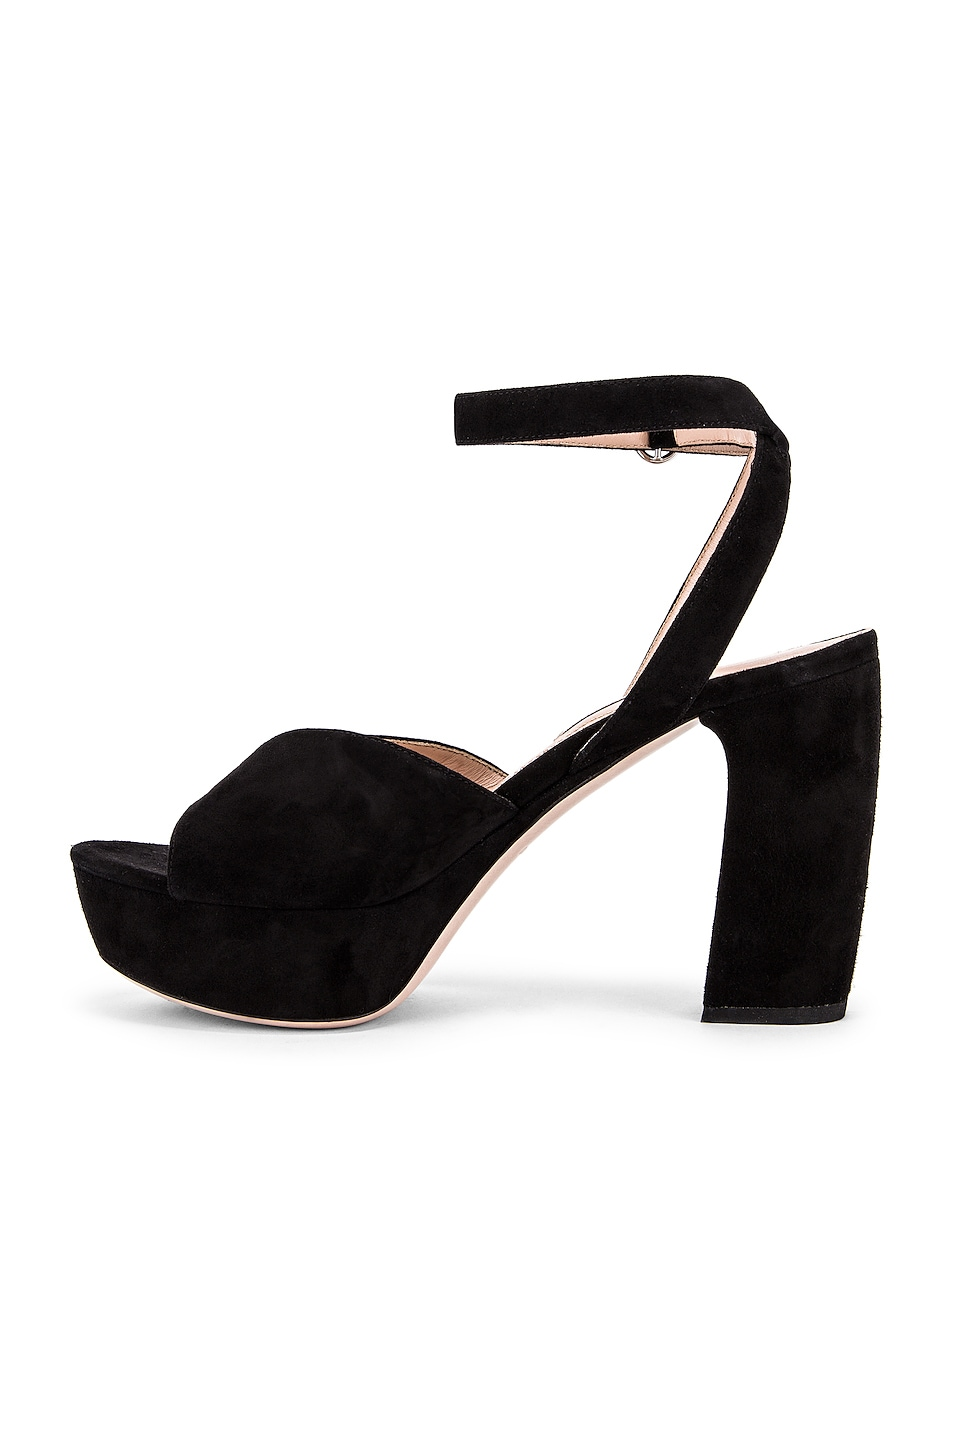 Image 5 of Miu Miu Platform Ankle Strap Sandals in Black